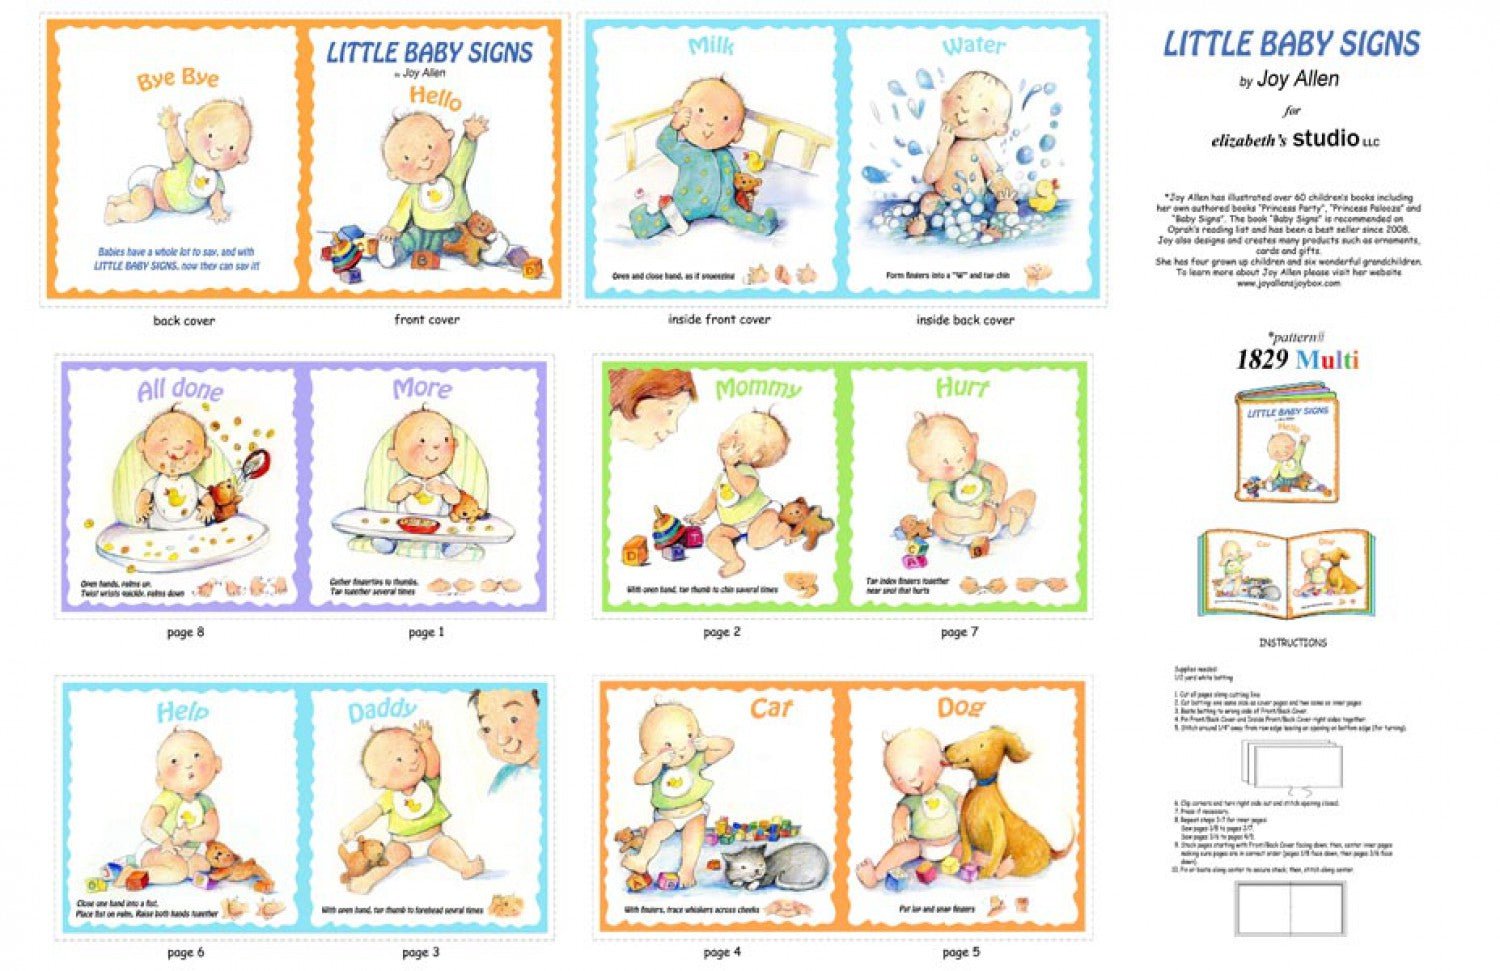 Little Baby Signs Fabric Book Panel To Sew  Quilt Girls. Crop Circle Signs. Wet Floor Signs. Adolescent Signs. Lumg Signs. Abdominal Signs. Dog Poop Signs Of Stroke. Serious Bacterial Signs. Doctor's Signs Of Stroke